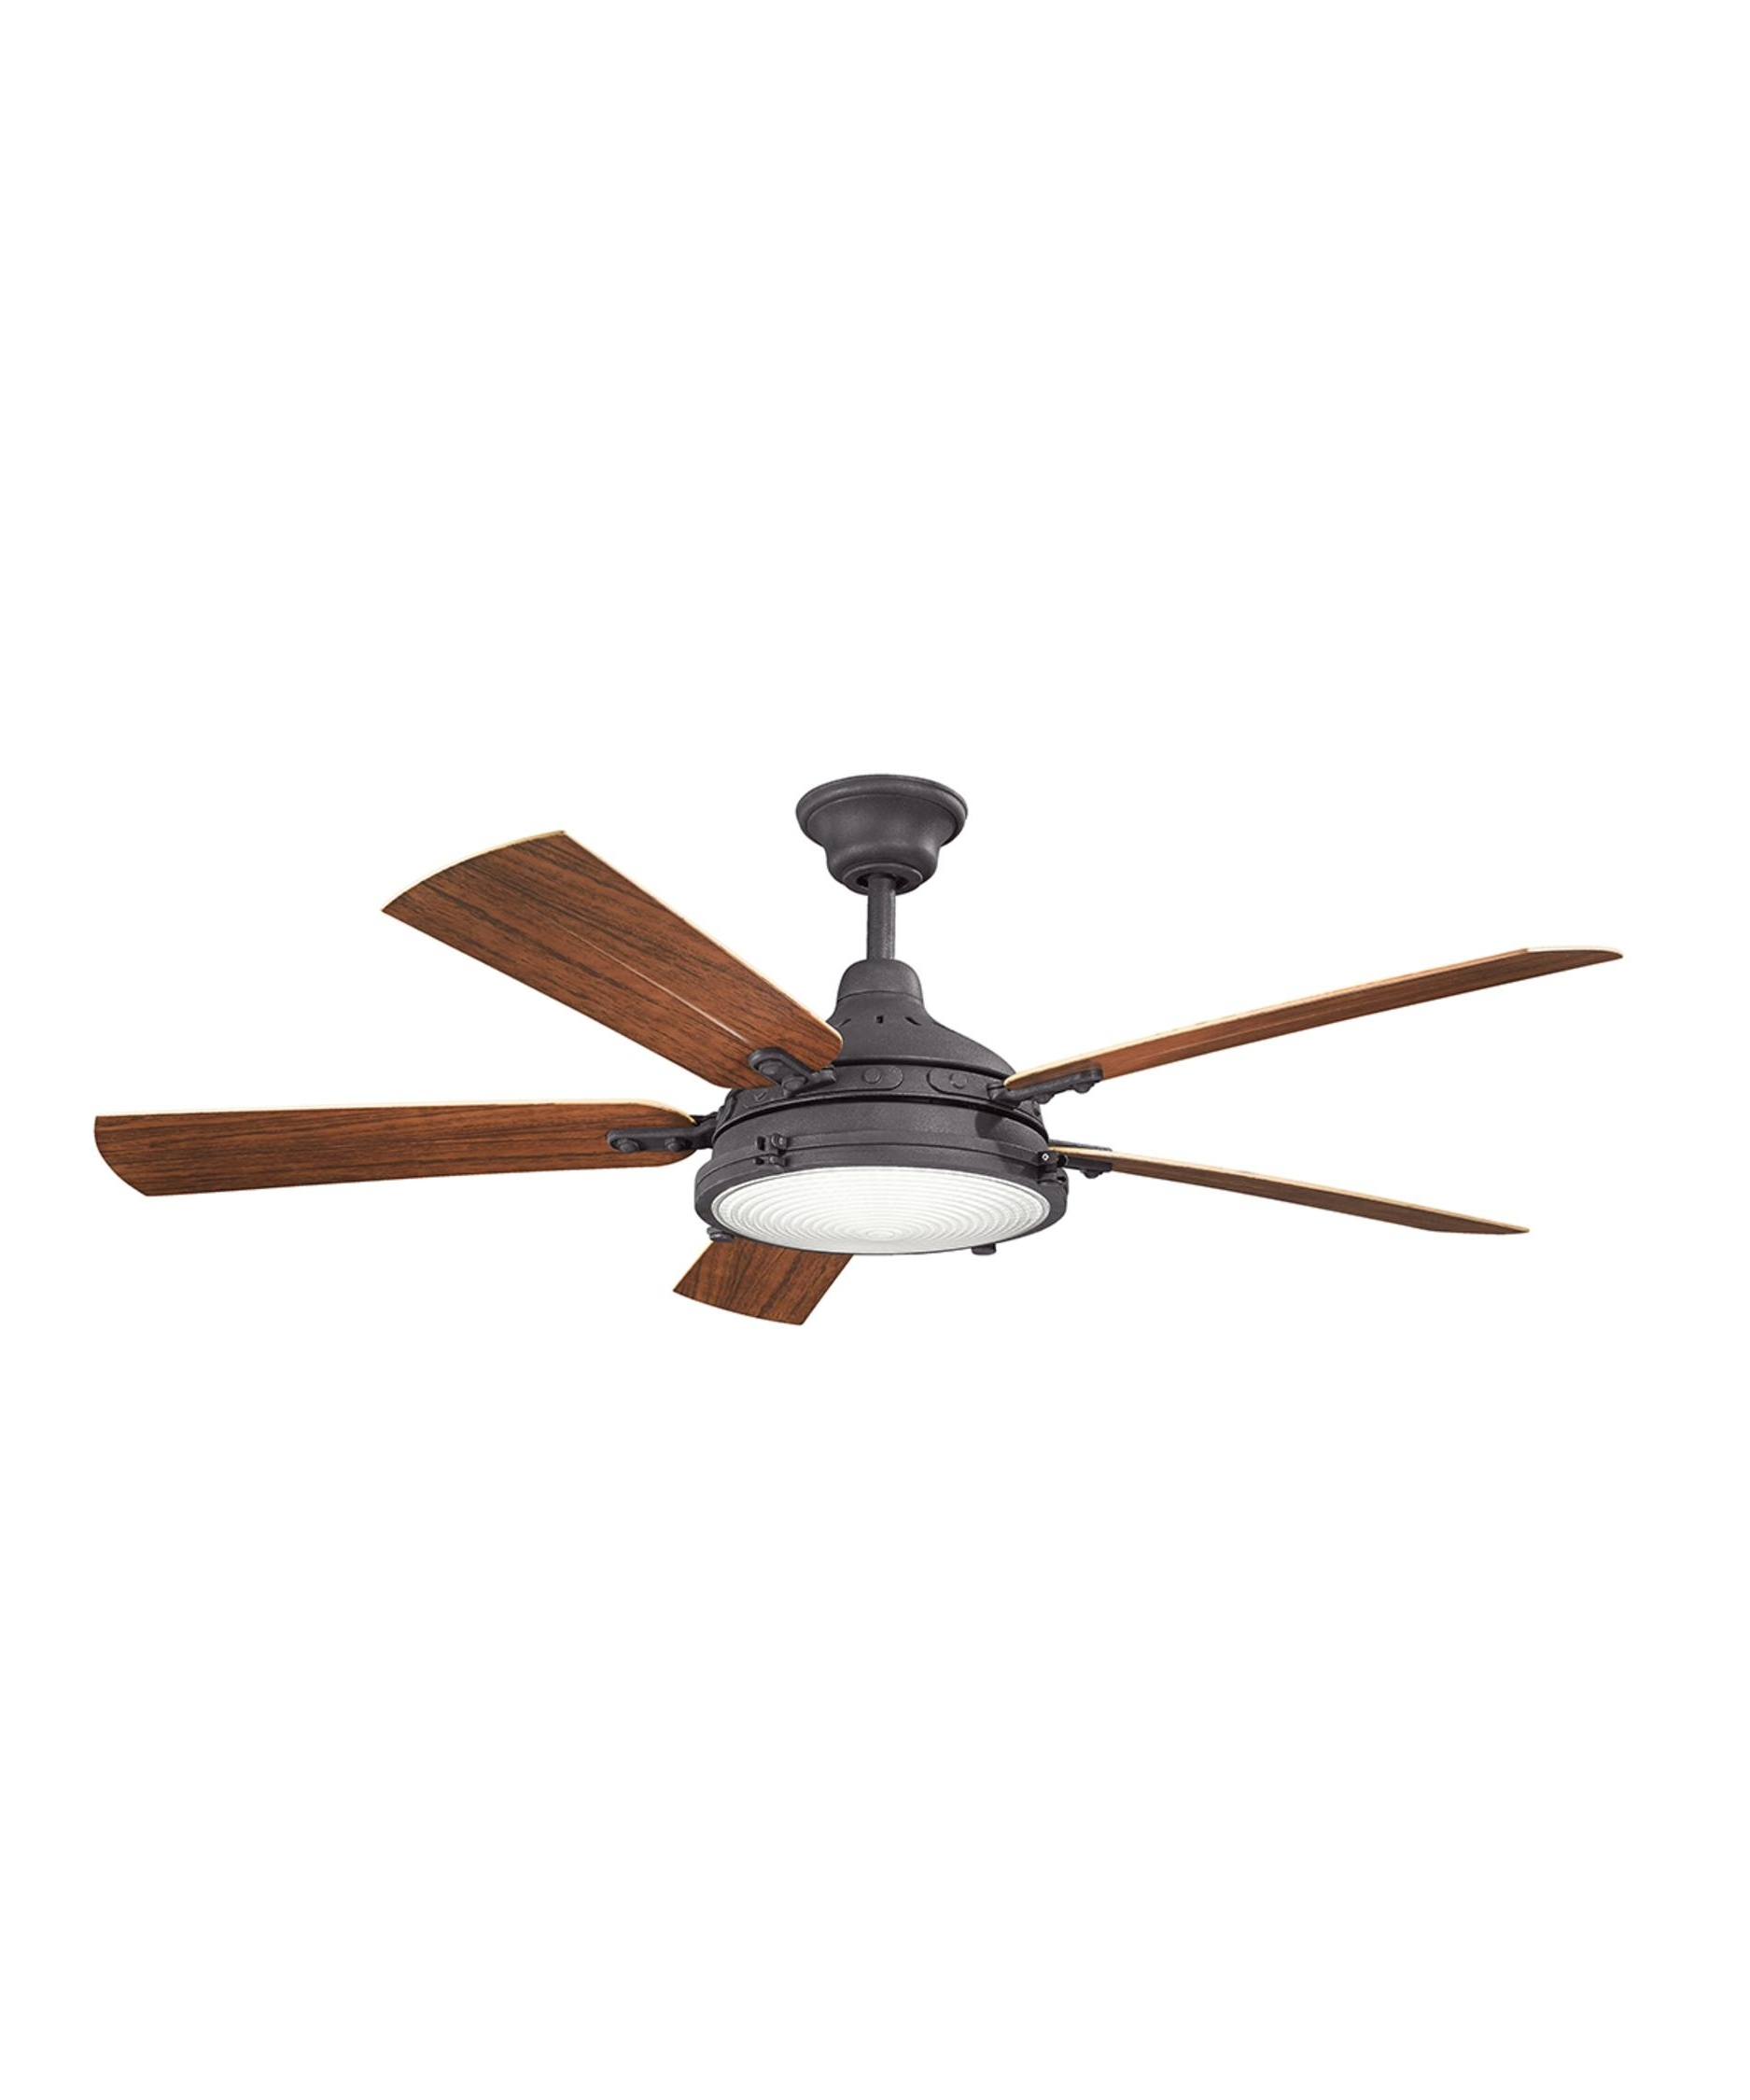 Best And Newest Kichler 310117 Hatteras Bay 60 Inch 5 Blade Ceiling Fan (View 8 of 20)